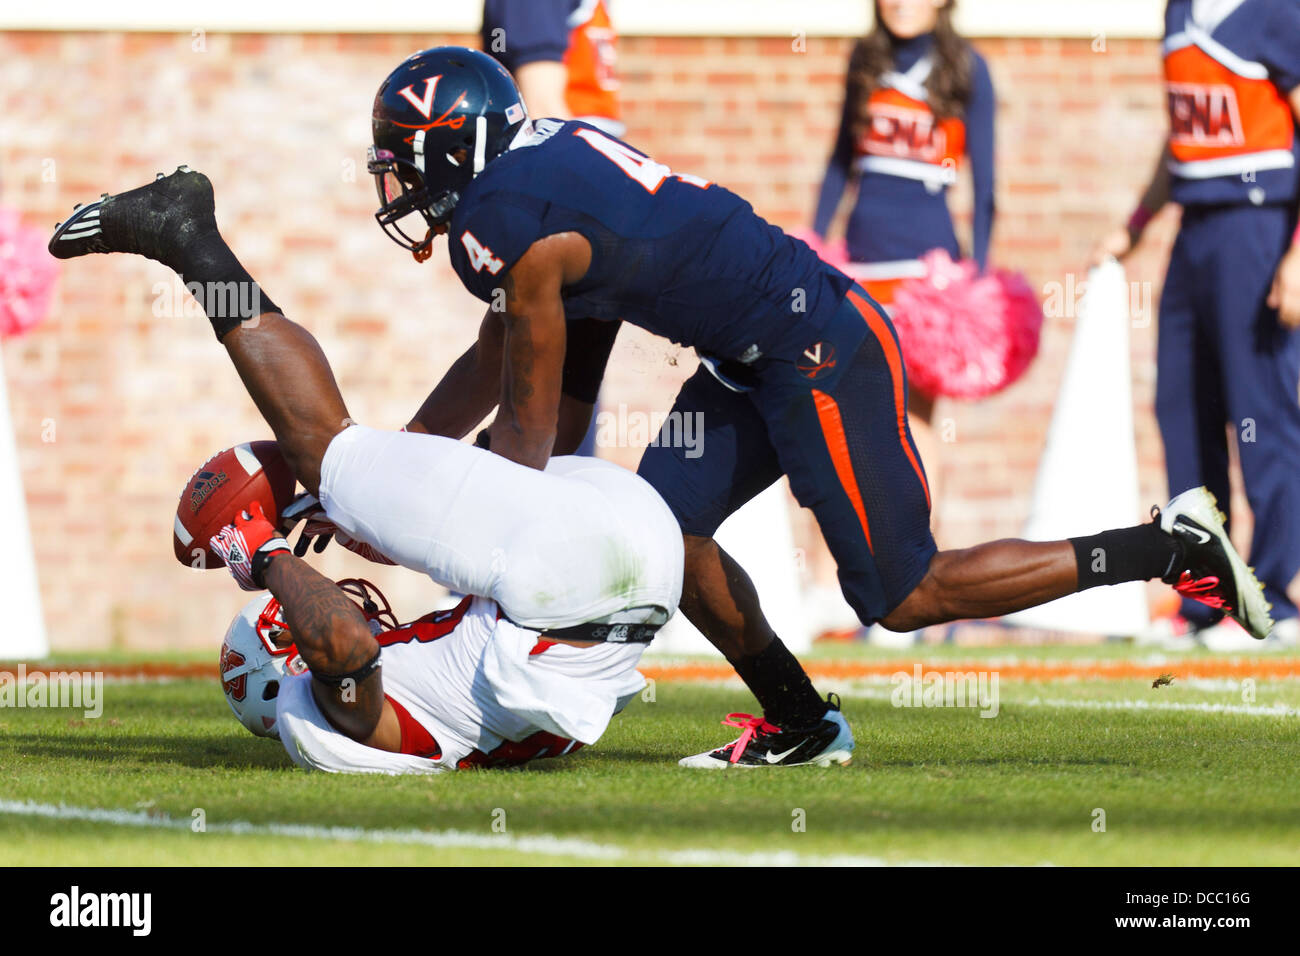 Virginia Cavaliers safety Rodney McLeod 4 breaks up a pass